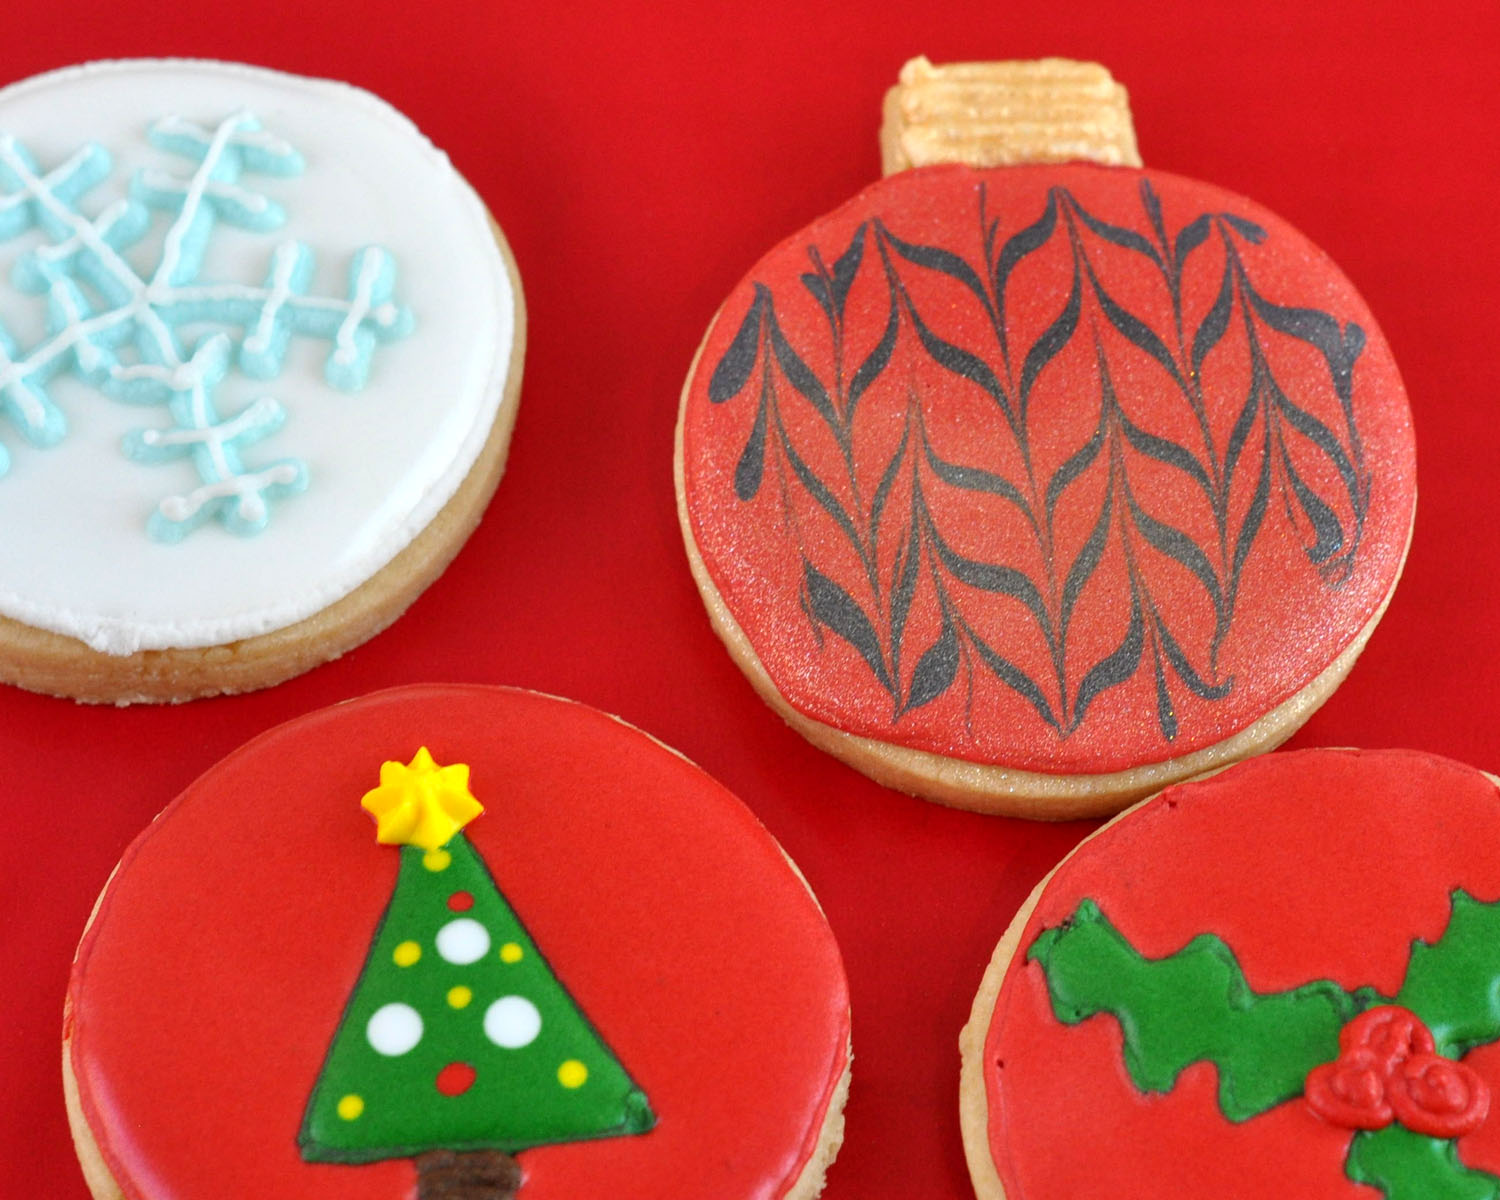 merry christmas sugar cookies - Decorations For Christmas Sugar Cookies